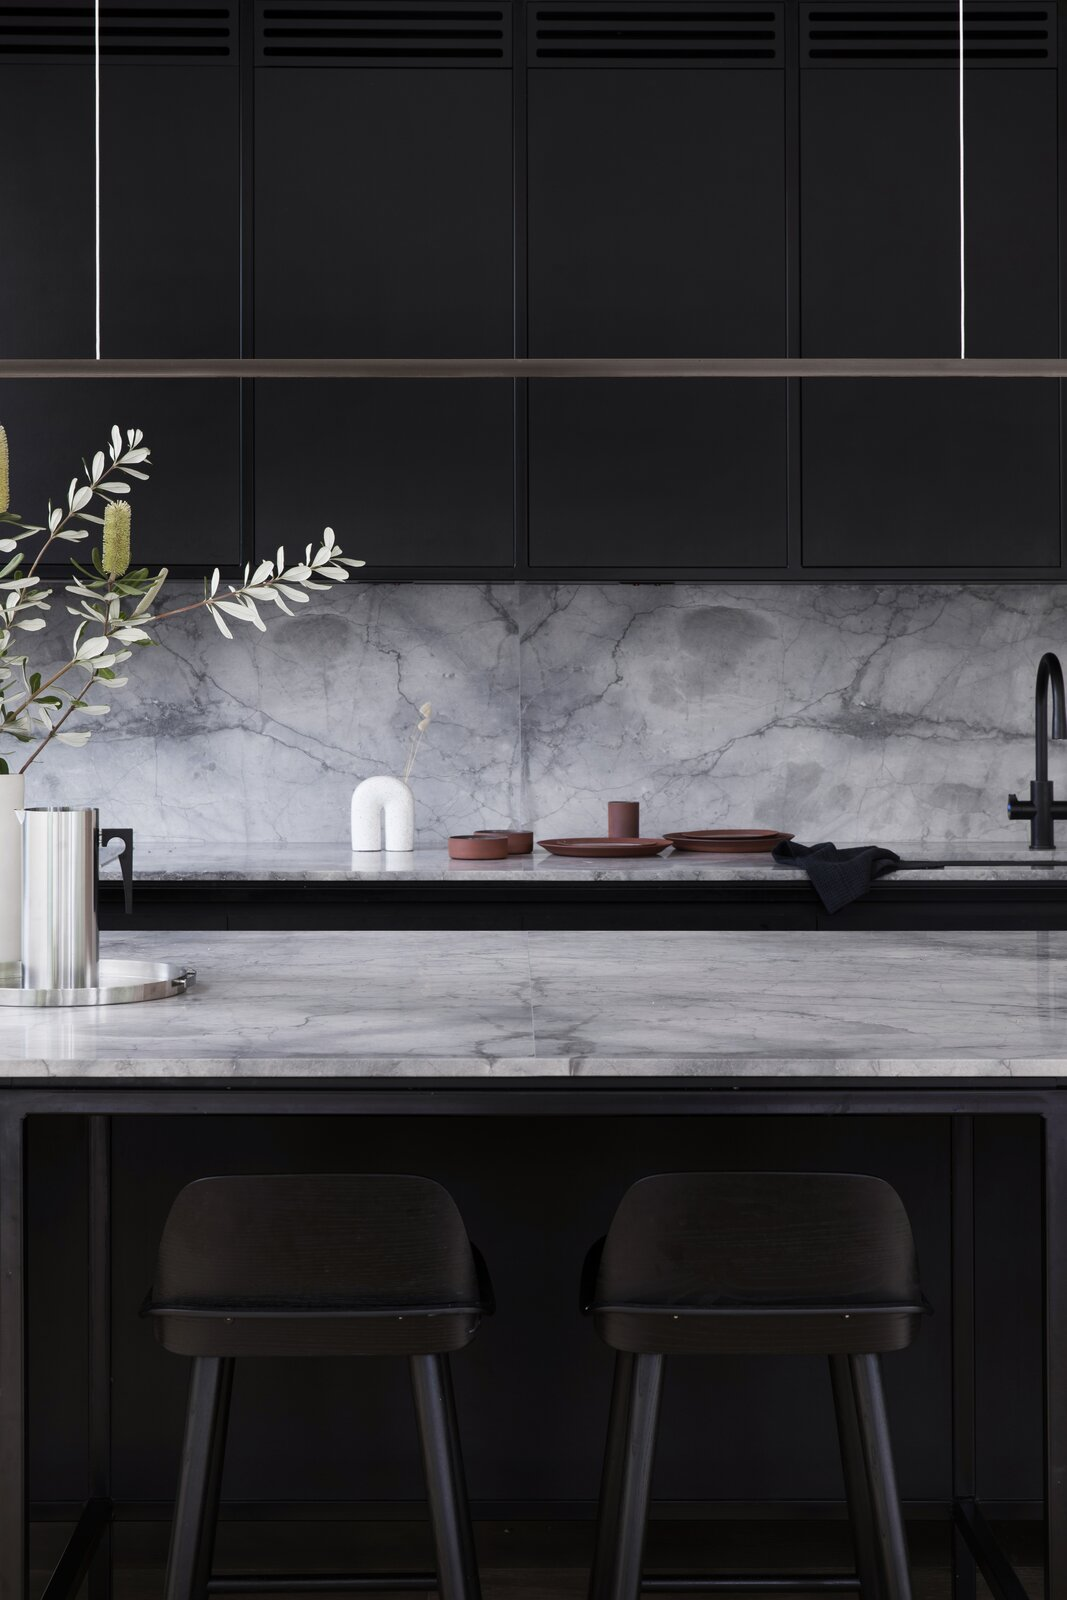 Cnr Virginia by Studio Prineas black kitchen with gray marble countertops and backsplash